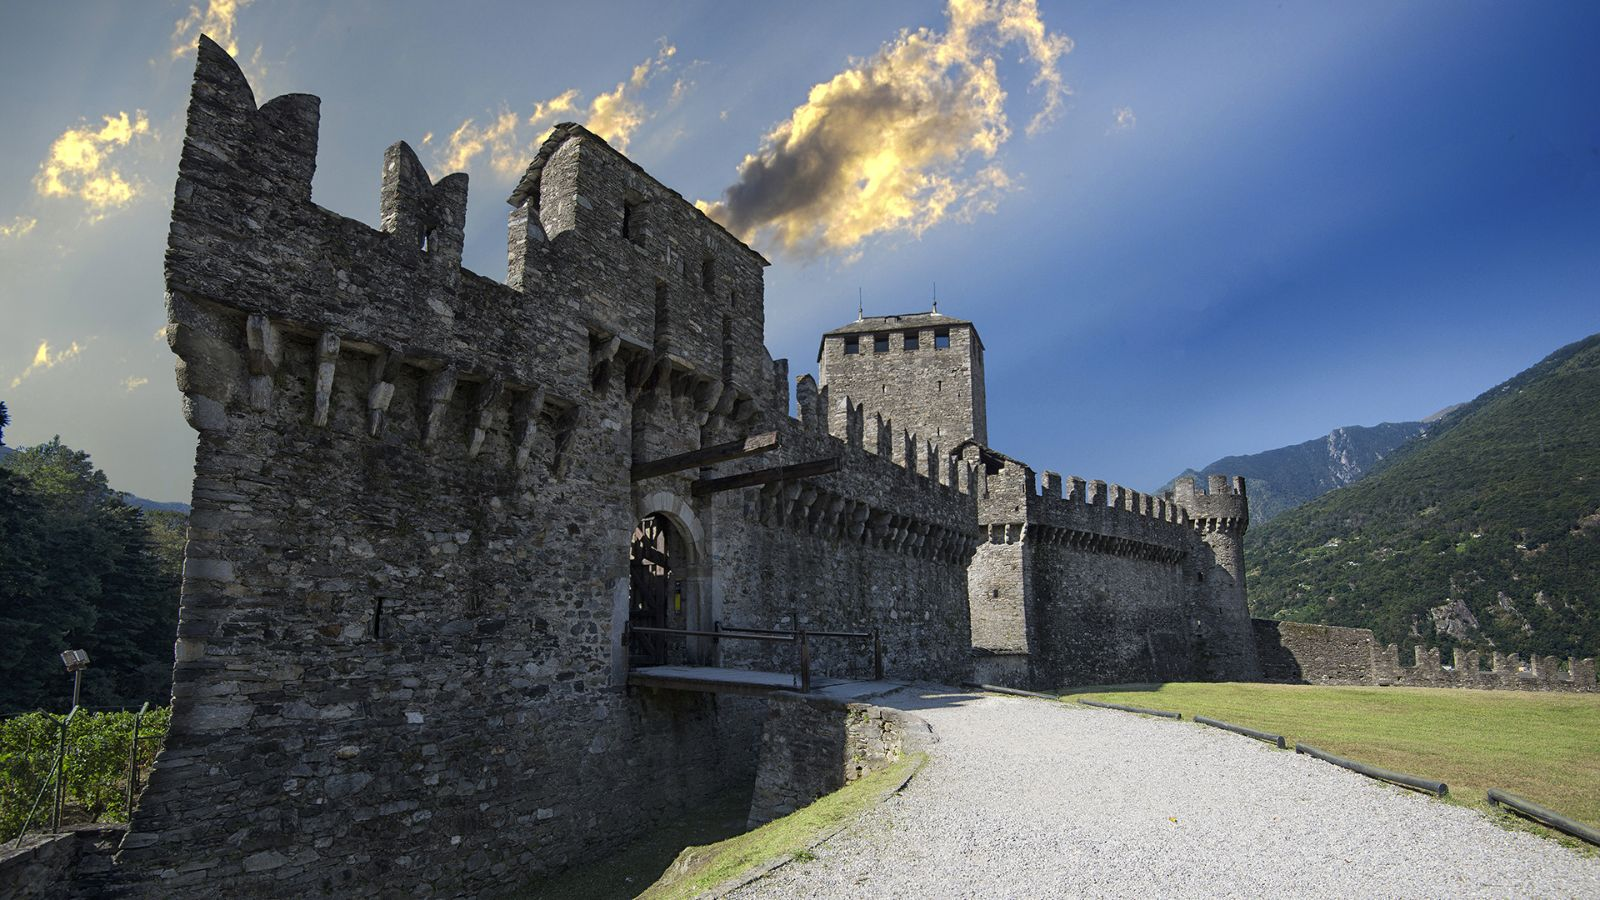 The Castle of Montebello, Bellinzona